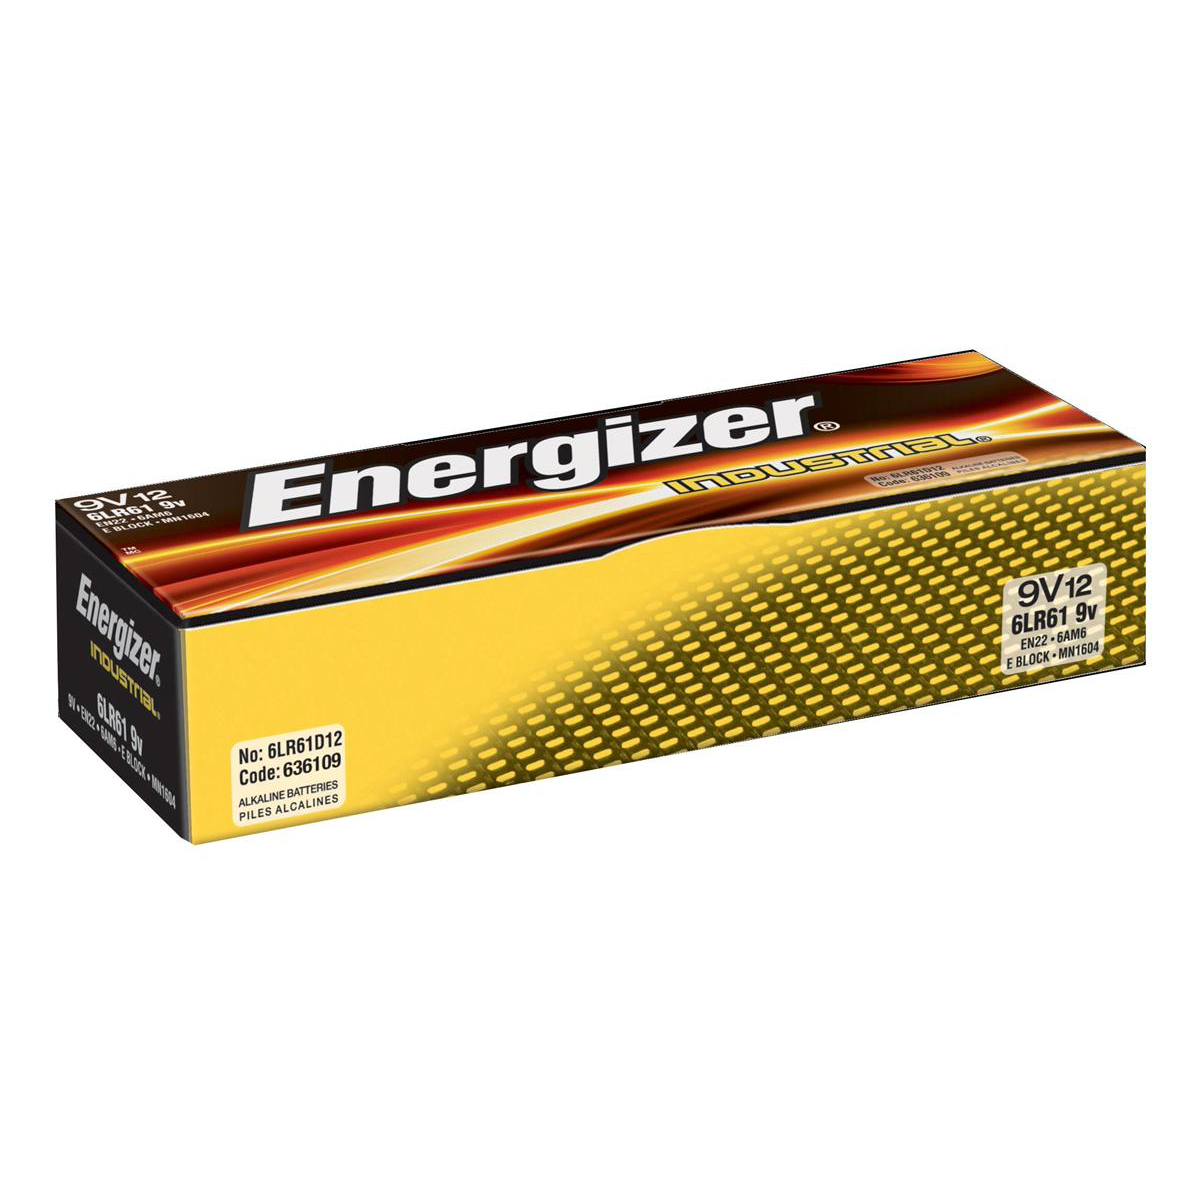 9V Energizer Industrial Battery Long Life 6LR61 9V Ref 636109 Pack 12